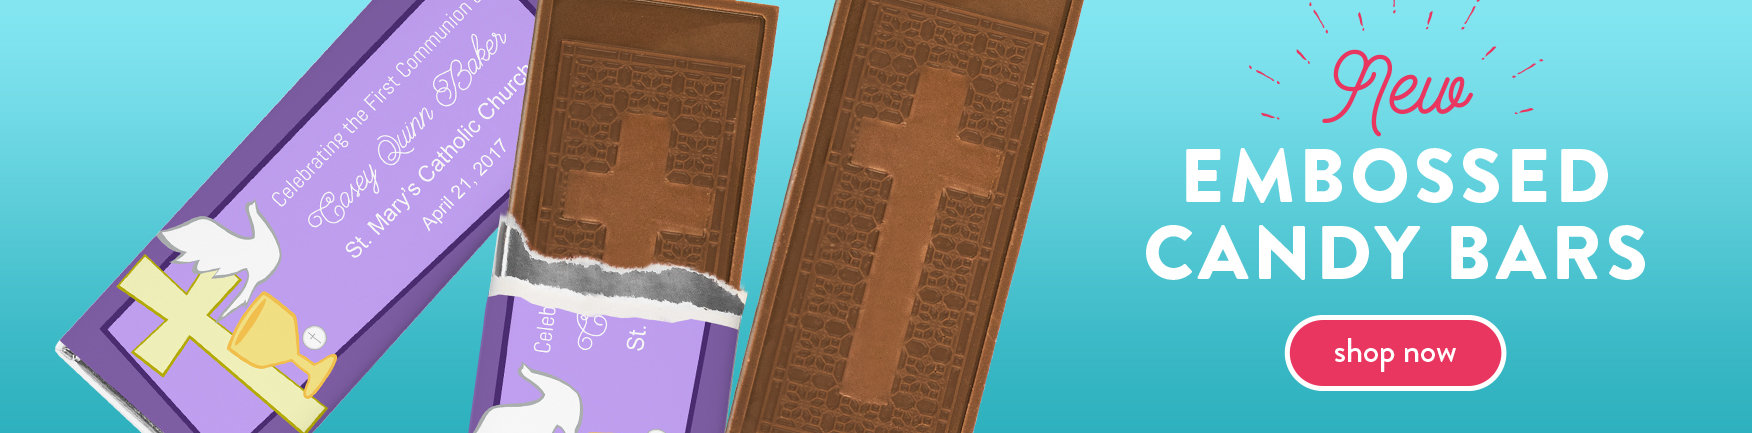 personalized first communion candy bars with cross embossed chocolate bars